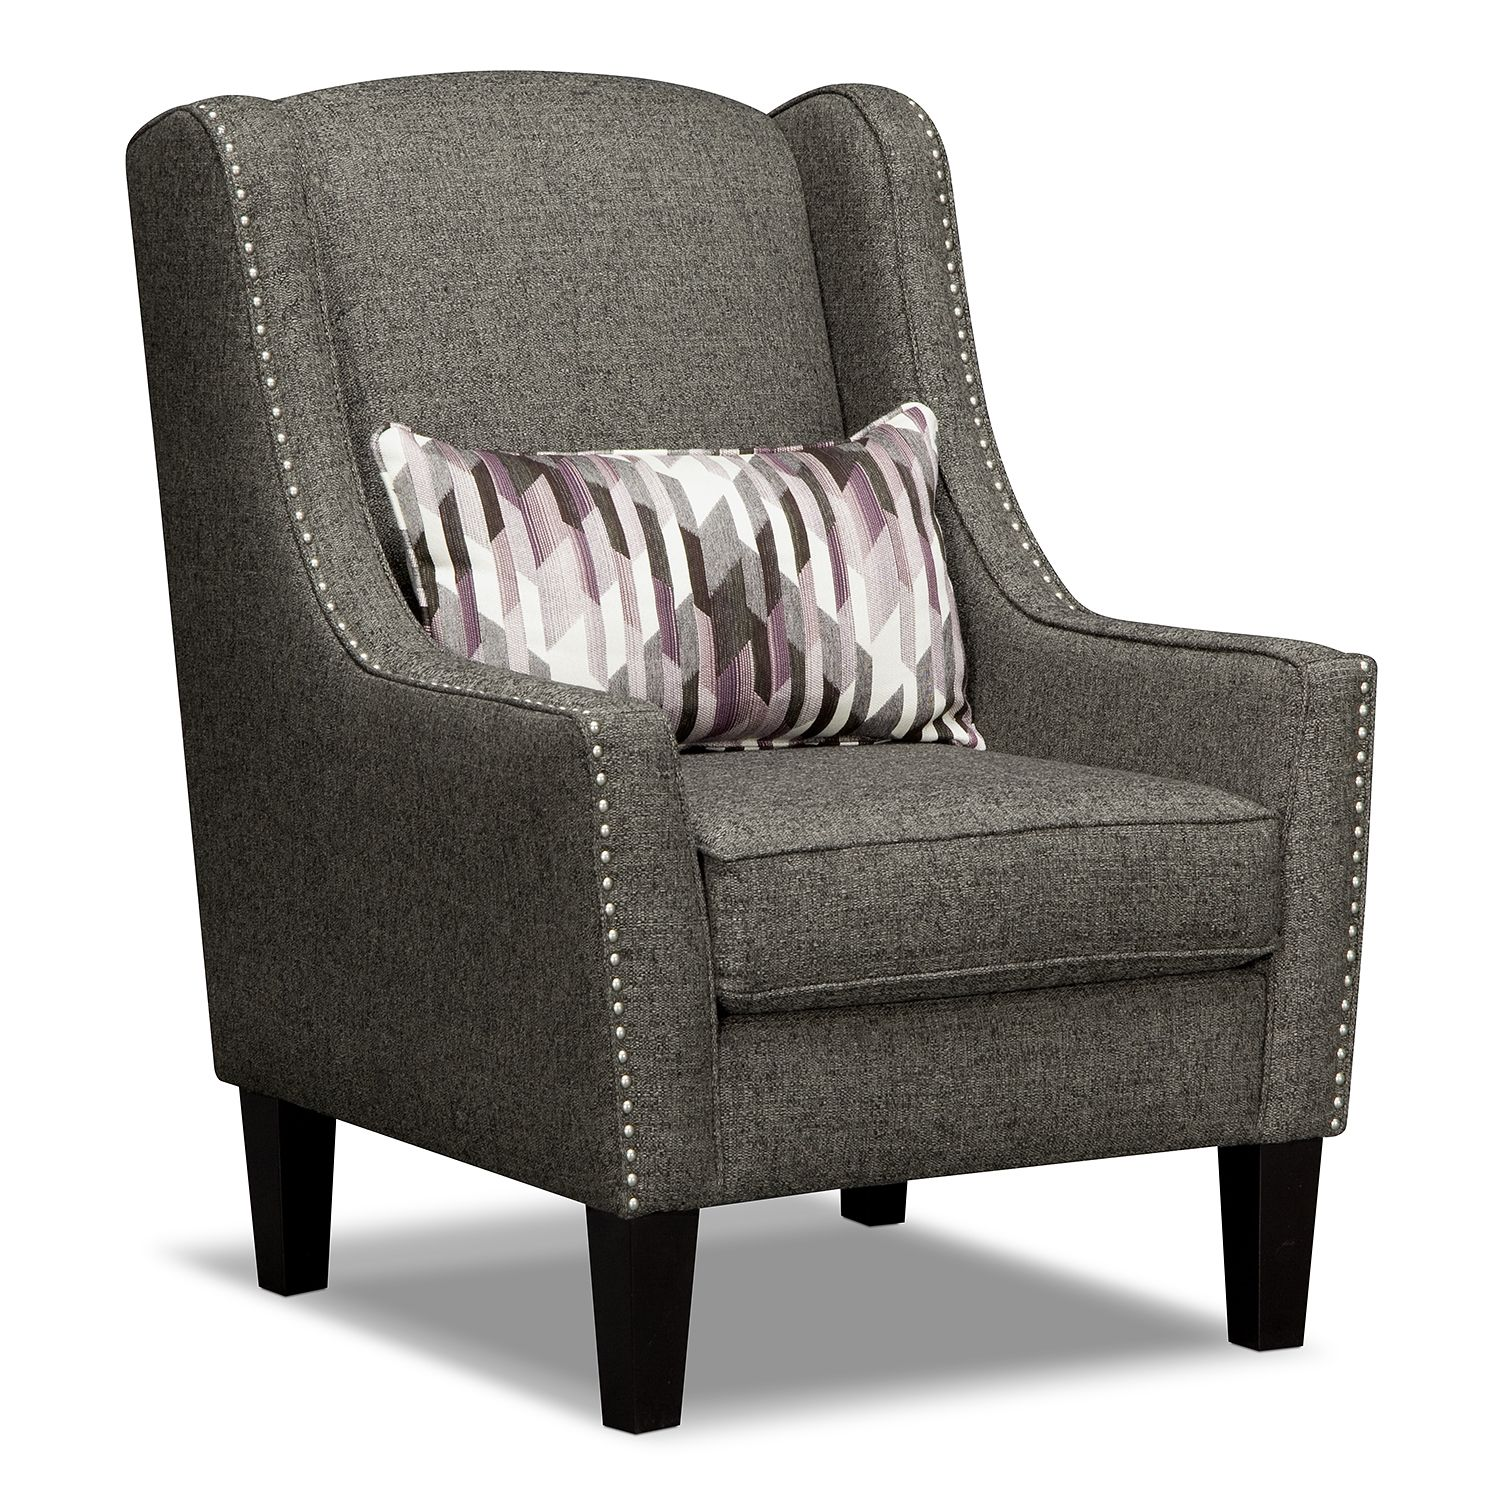 Ritz 2 pc living room w accent chair american signature for Sofa and 2 chairs living room